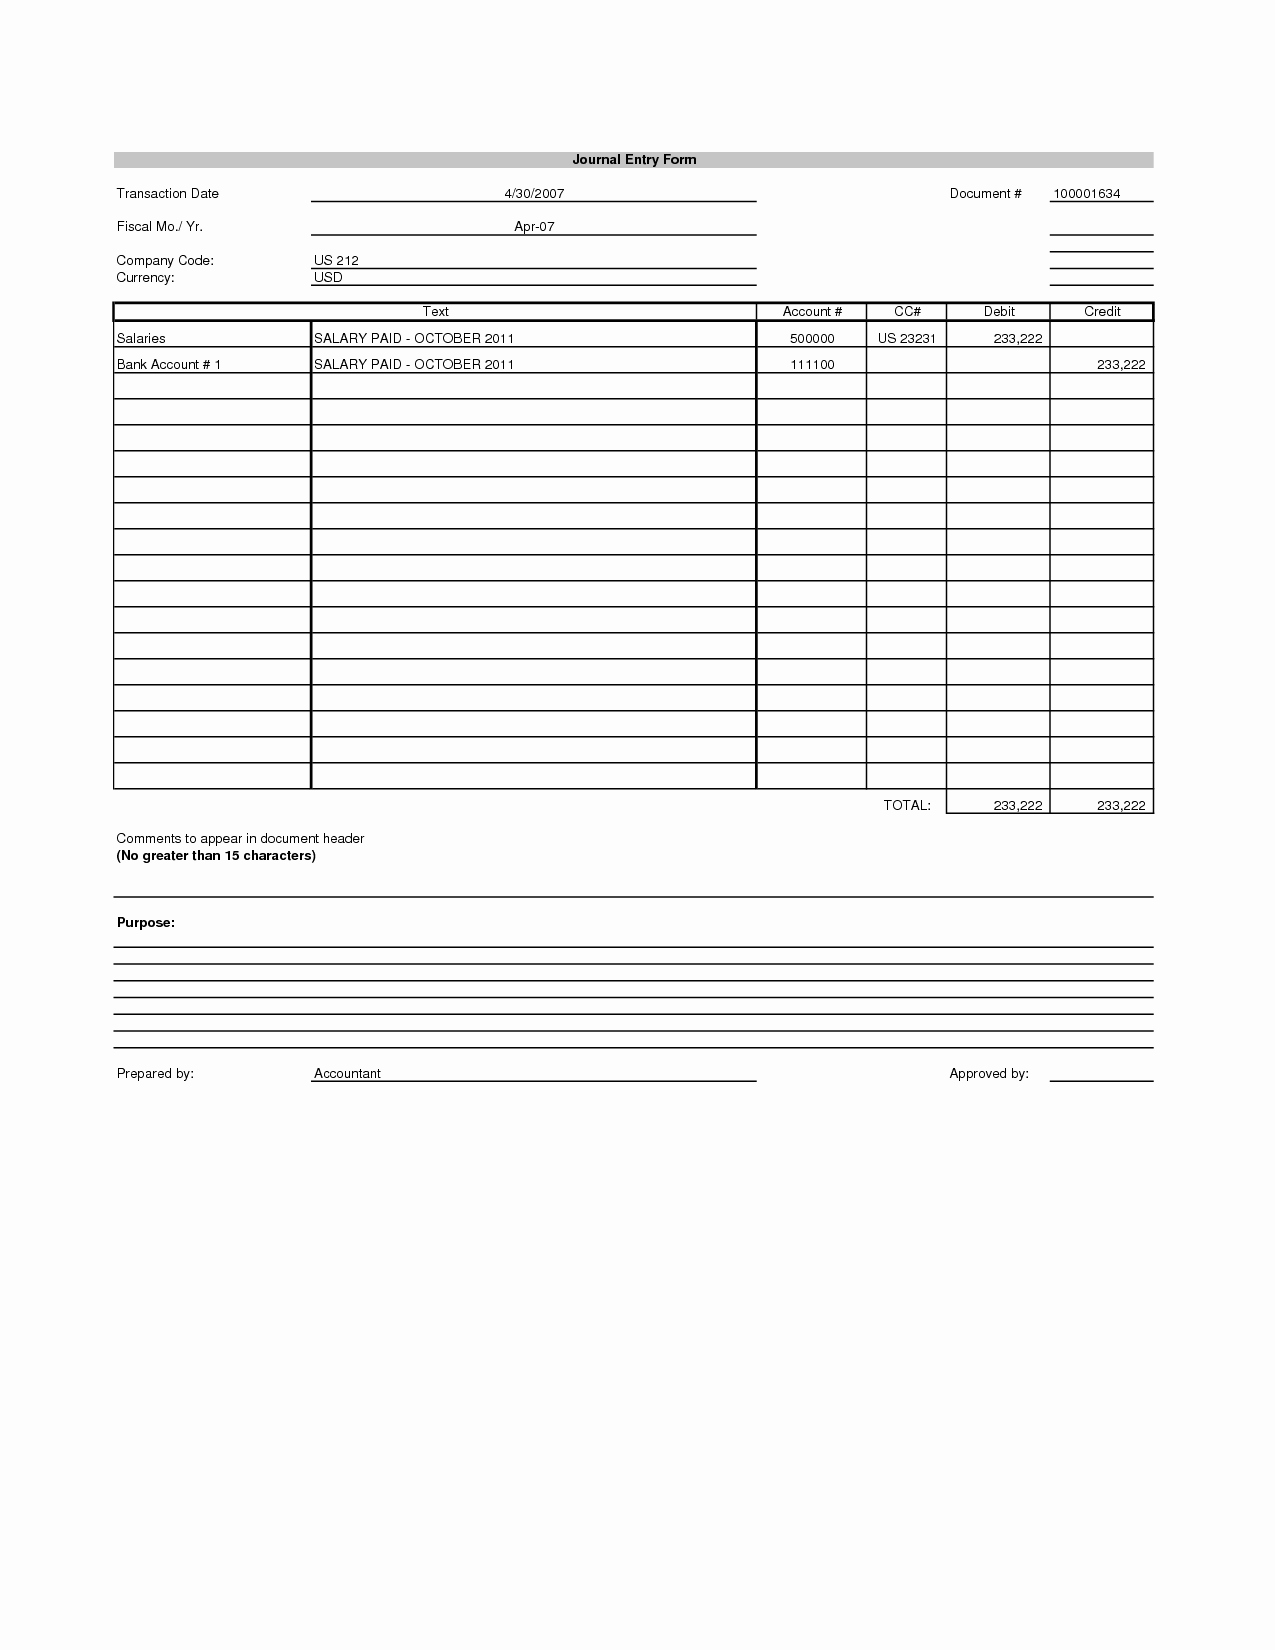 Journal Entry Template Excel Awesome Best S Of Journal Entry Template Excel Blank